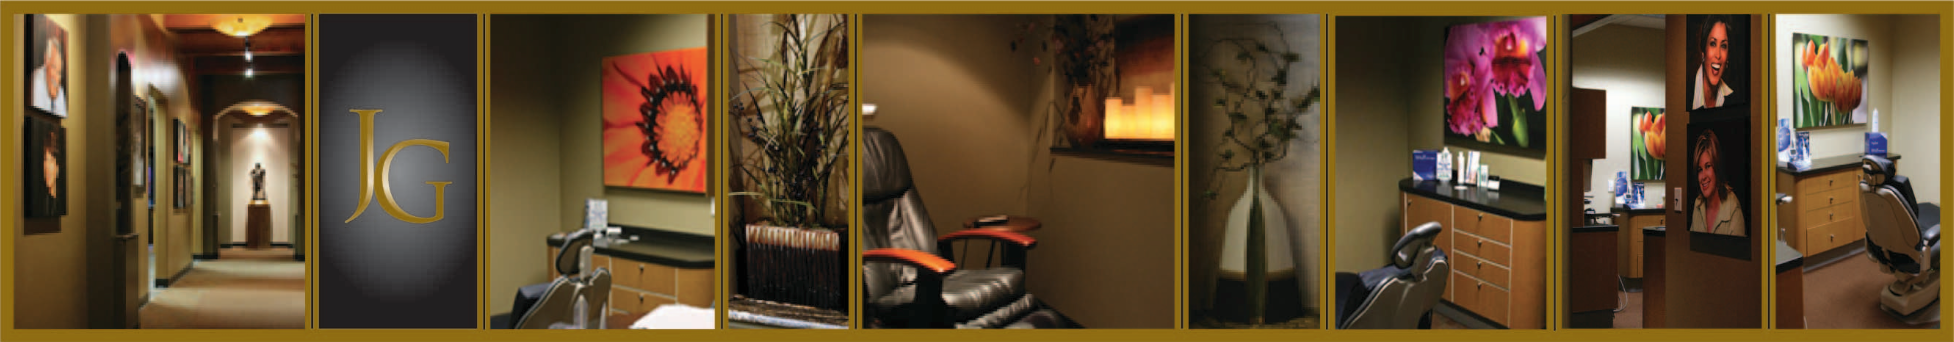 Tour the office of Jeff Gray DDS - Sedation & Cosmetic Dentistry in La Mesa, CA